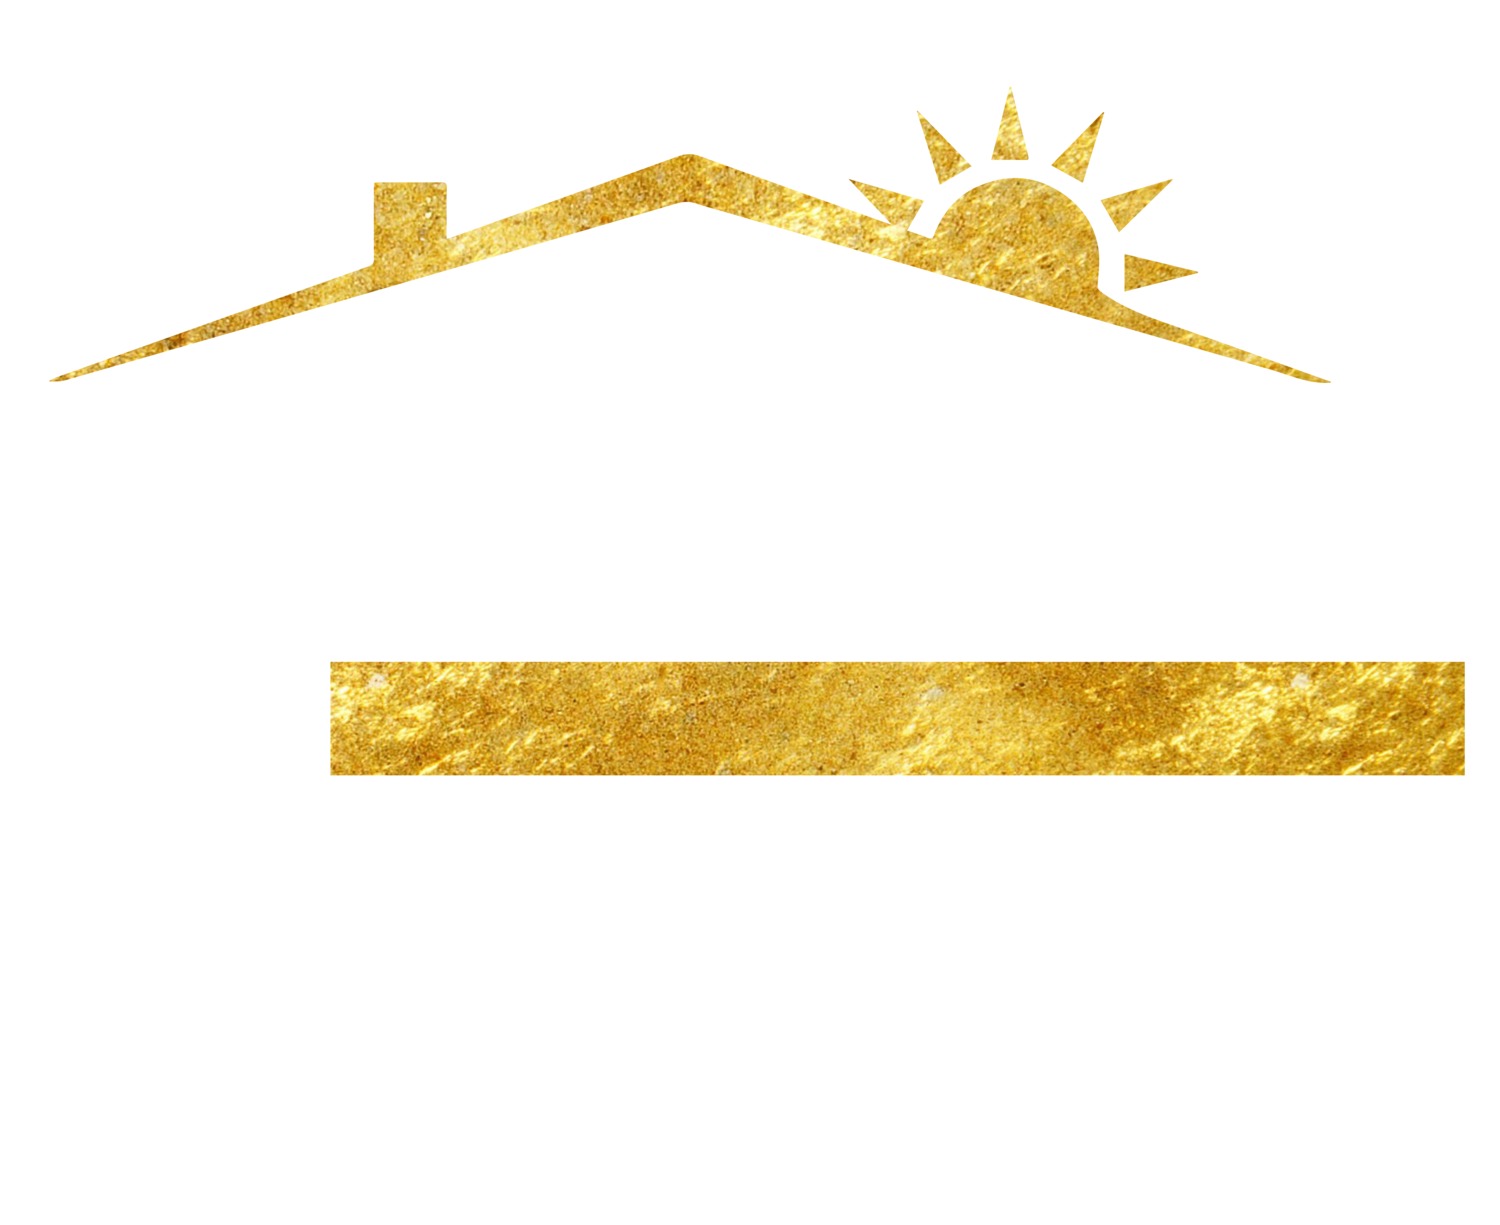 SunBay Construction - Los Altos' Premeir Construction, Renovation and Addition Company